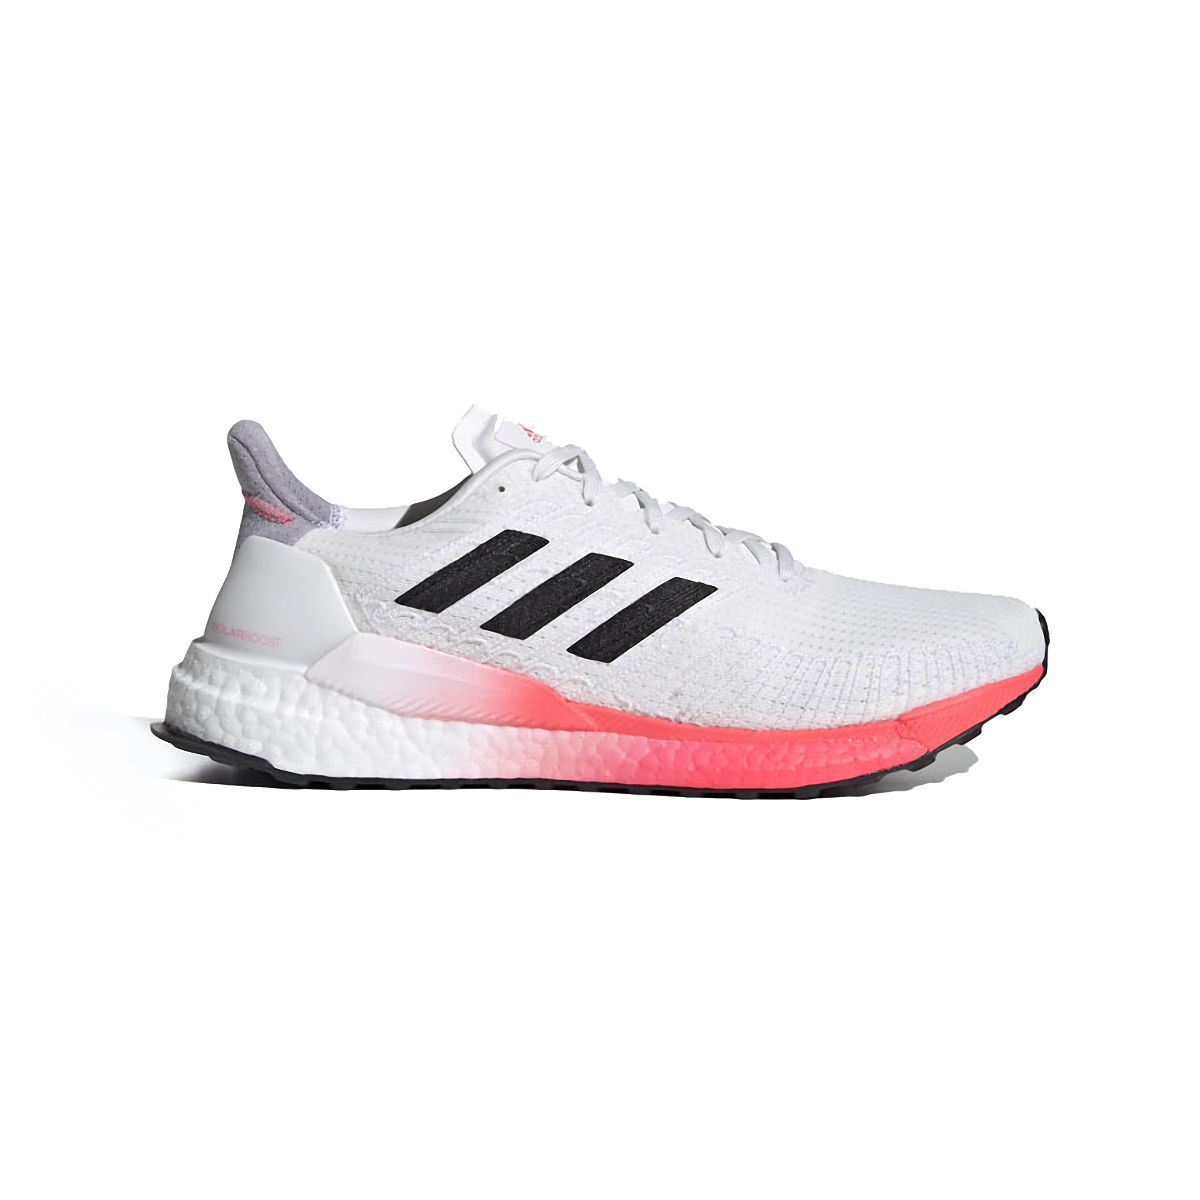 Men's Adidas SolarBOOST 19 Running Shoe - Color: Crystal White/Core Black/Copper Metallic - Size: 6.5 - Width: Regular, Crystal White/Core Black/Copper Metallic, large, image 1